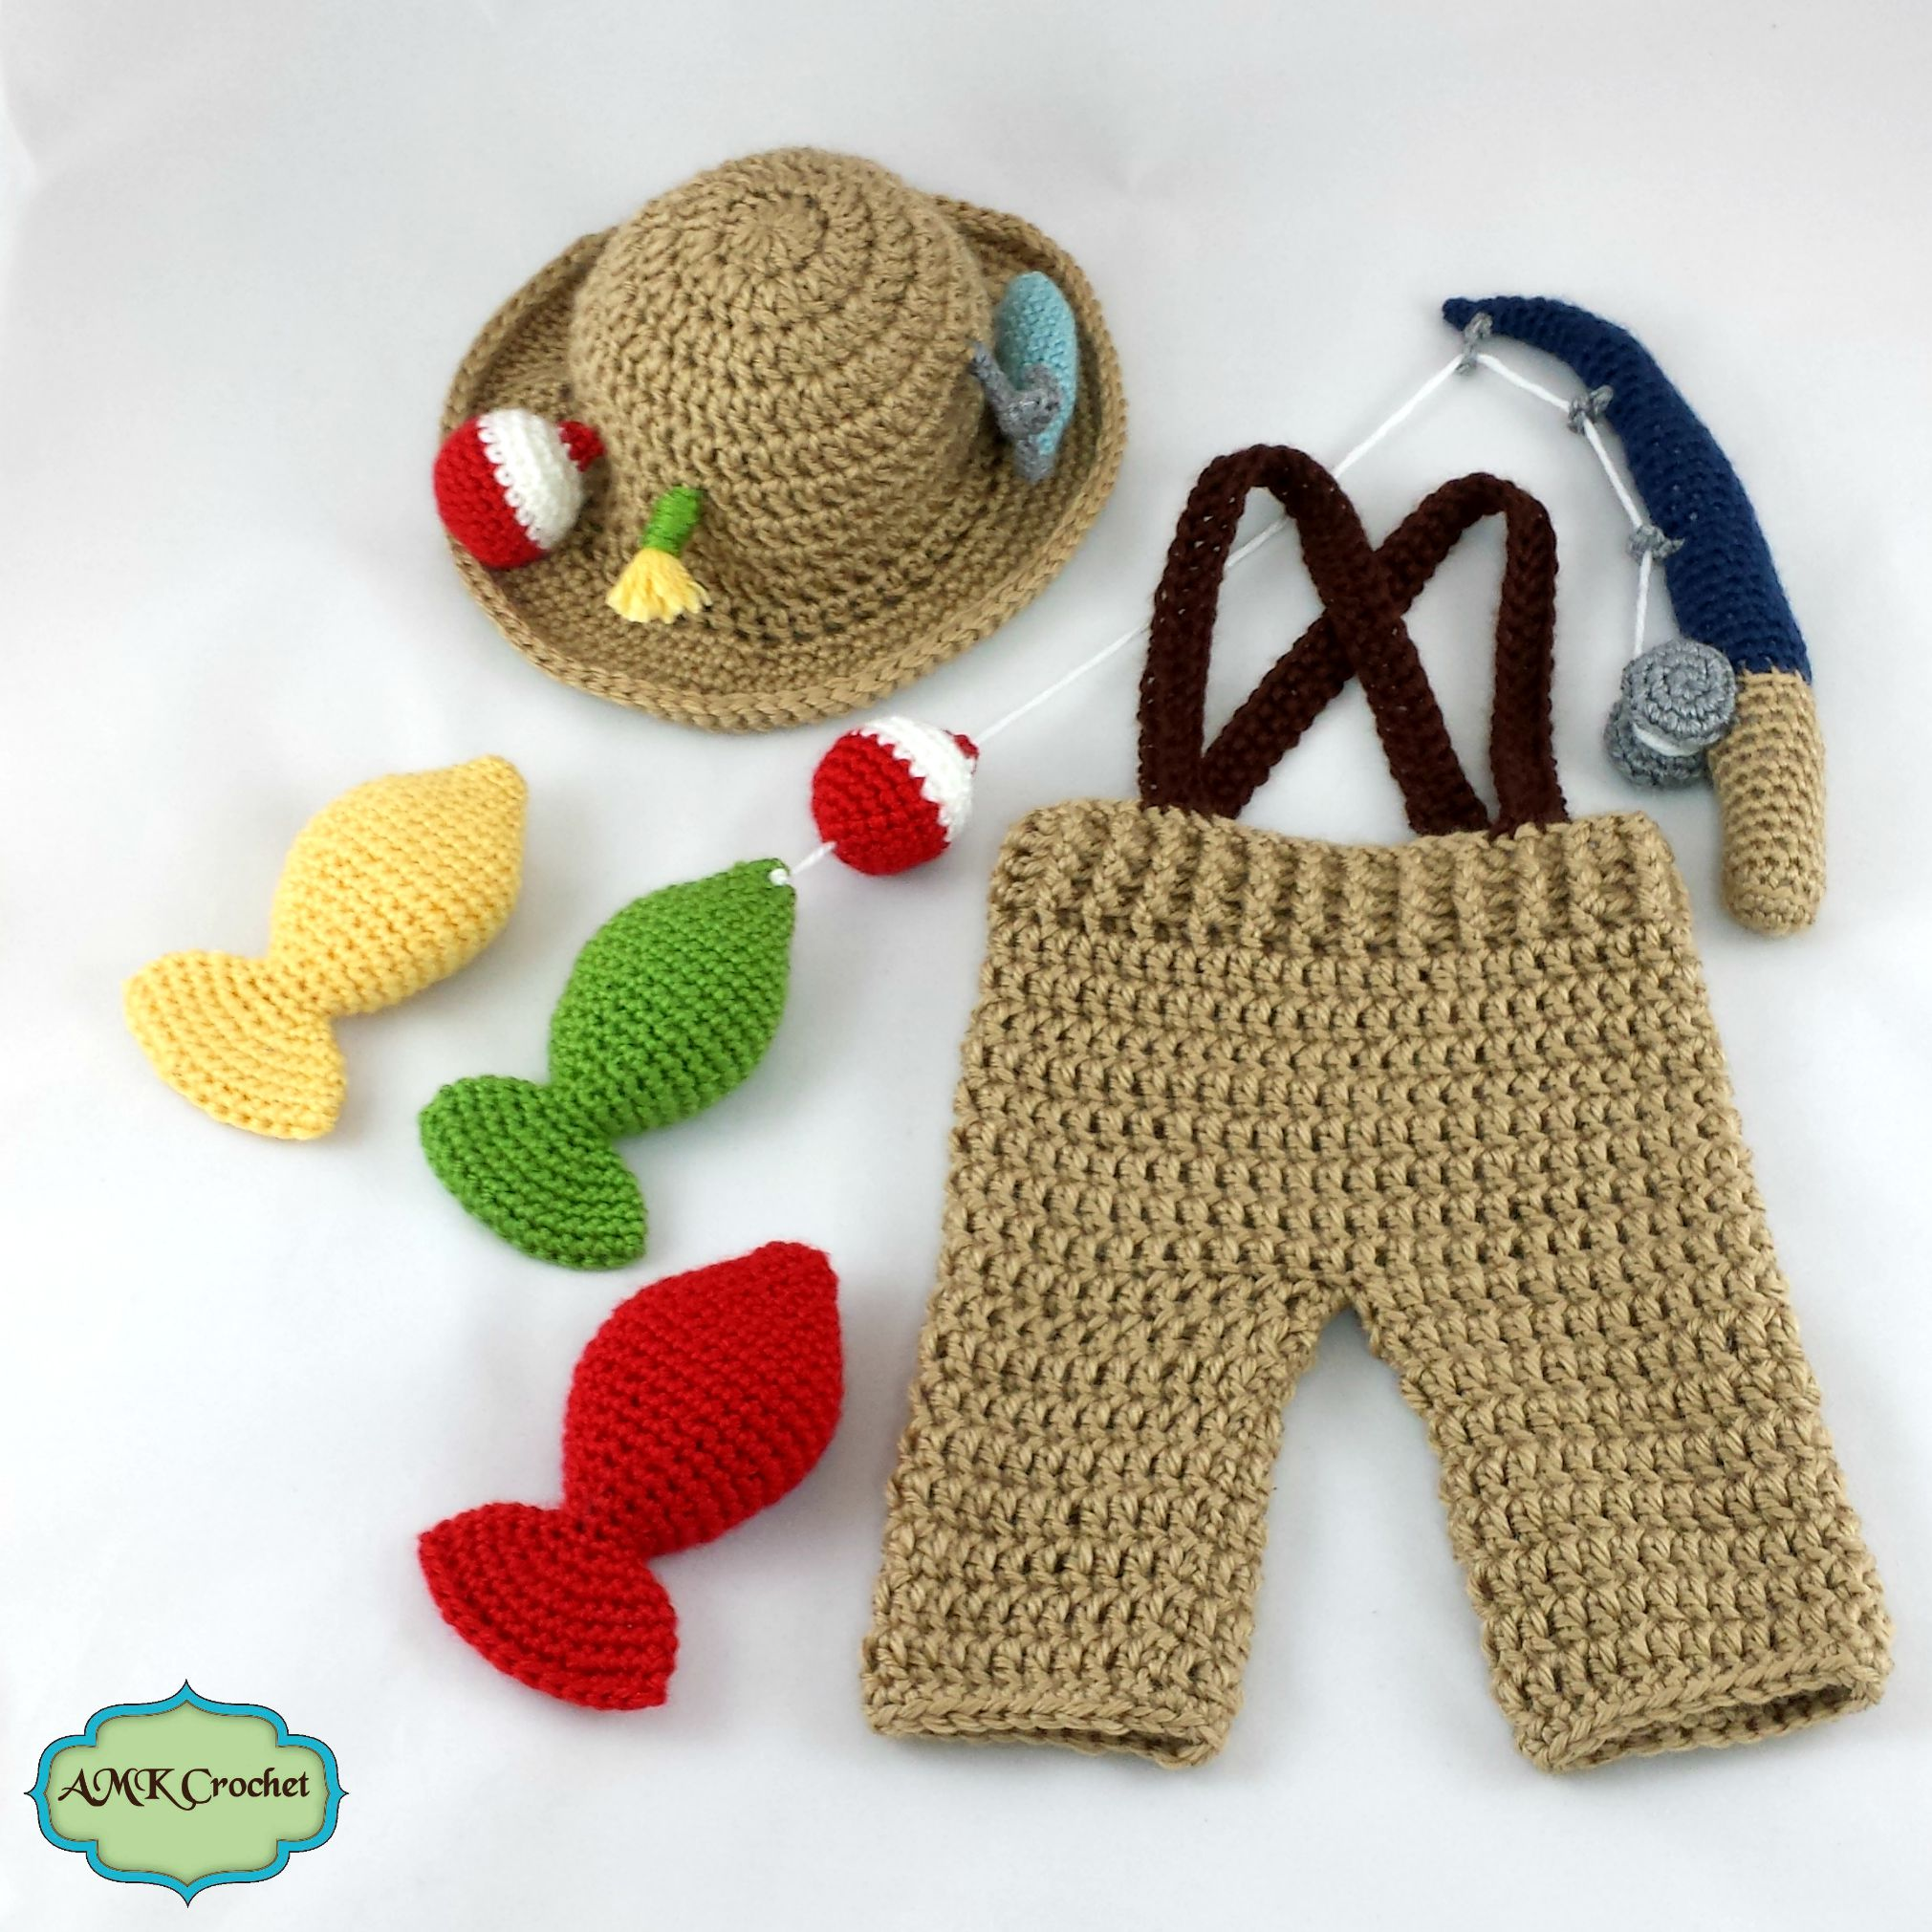 Crochet Newborn Fisherman Outfit Pattern | AMK Crochet